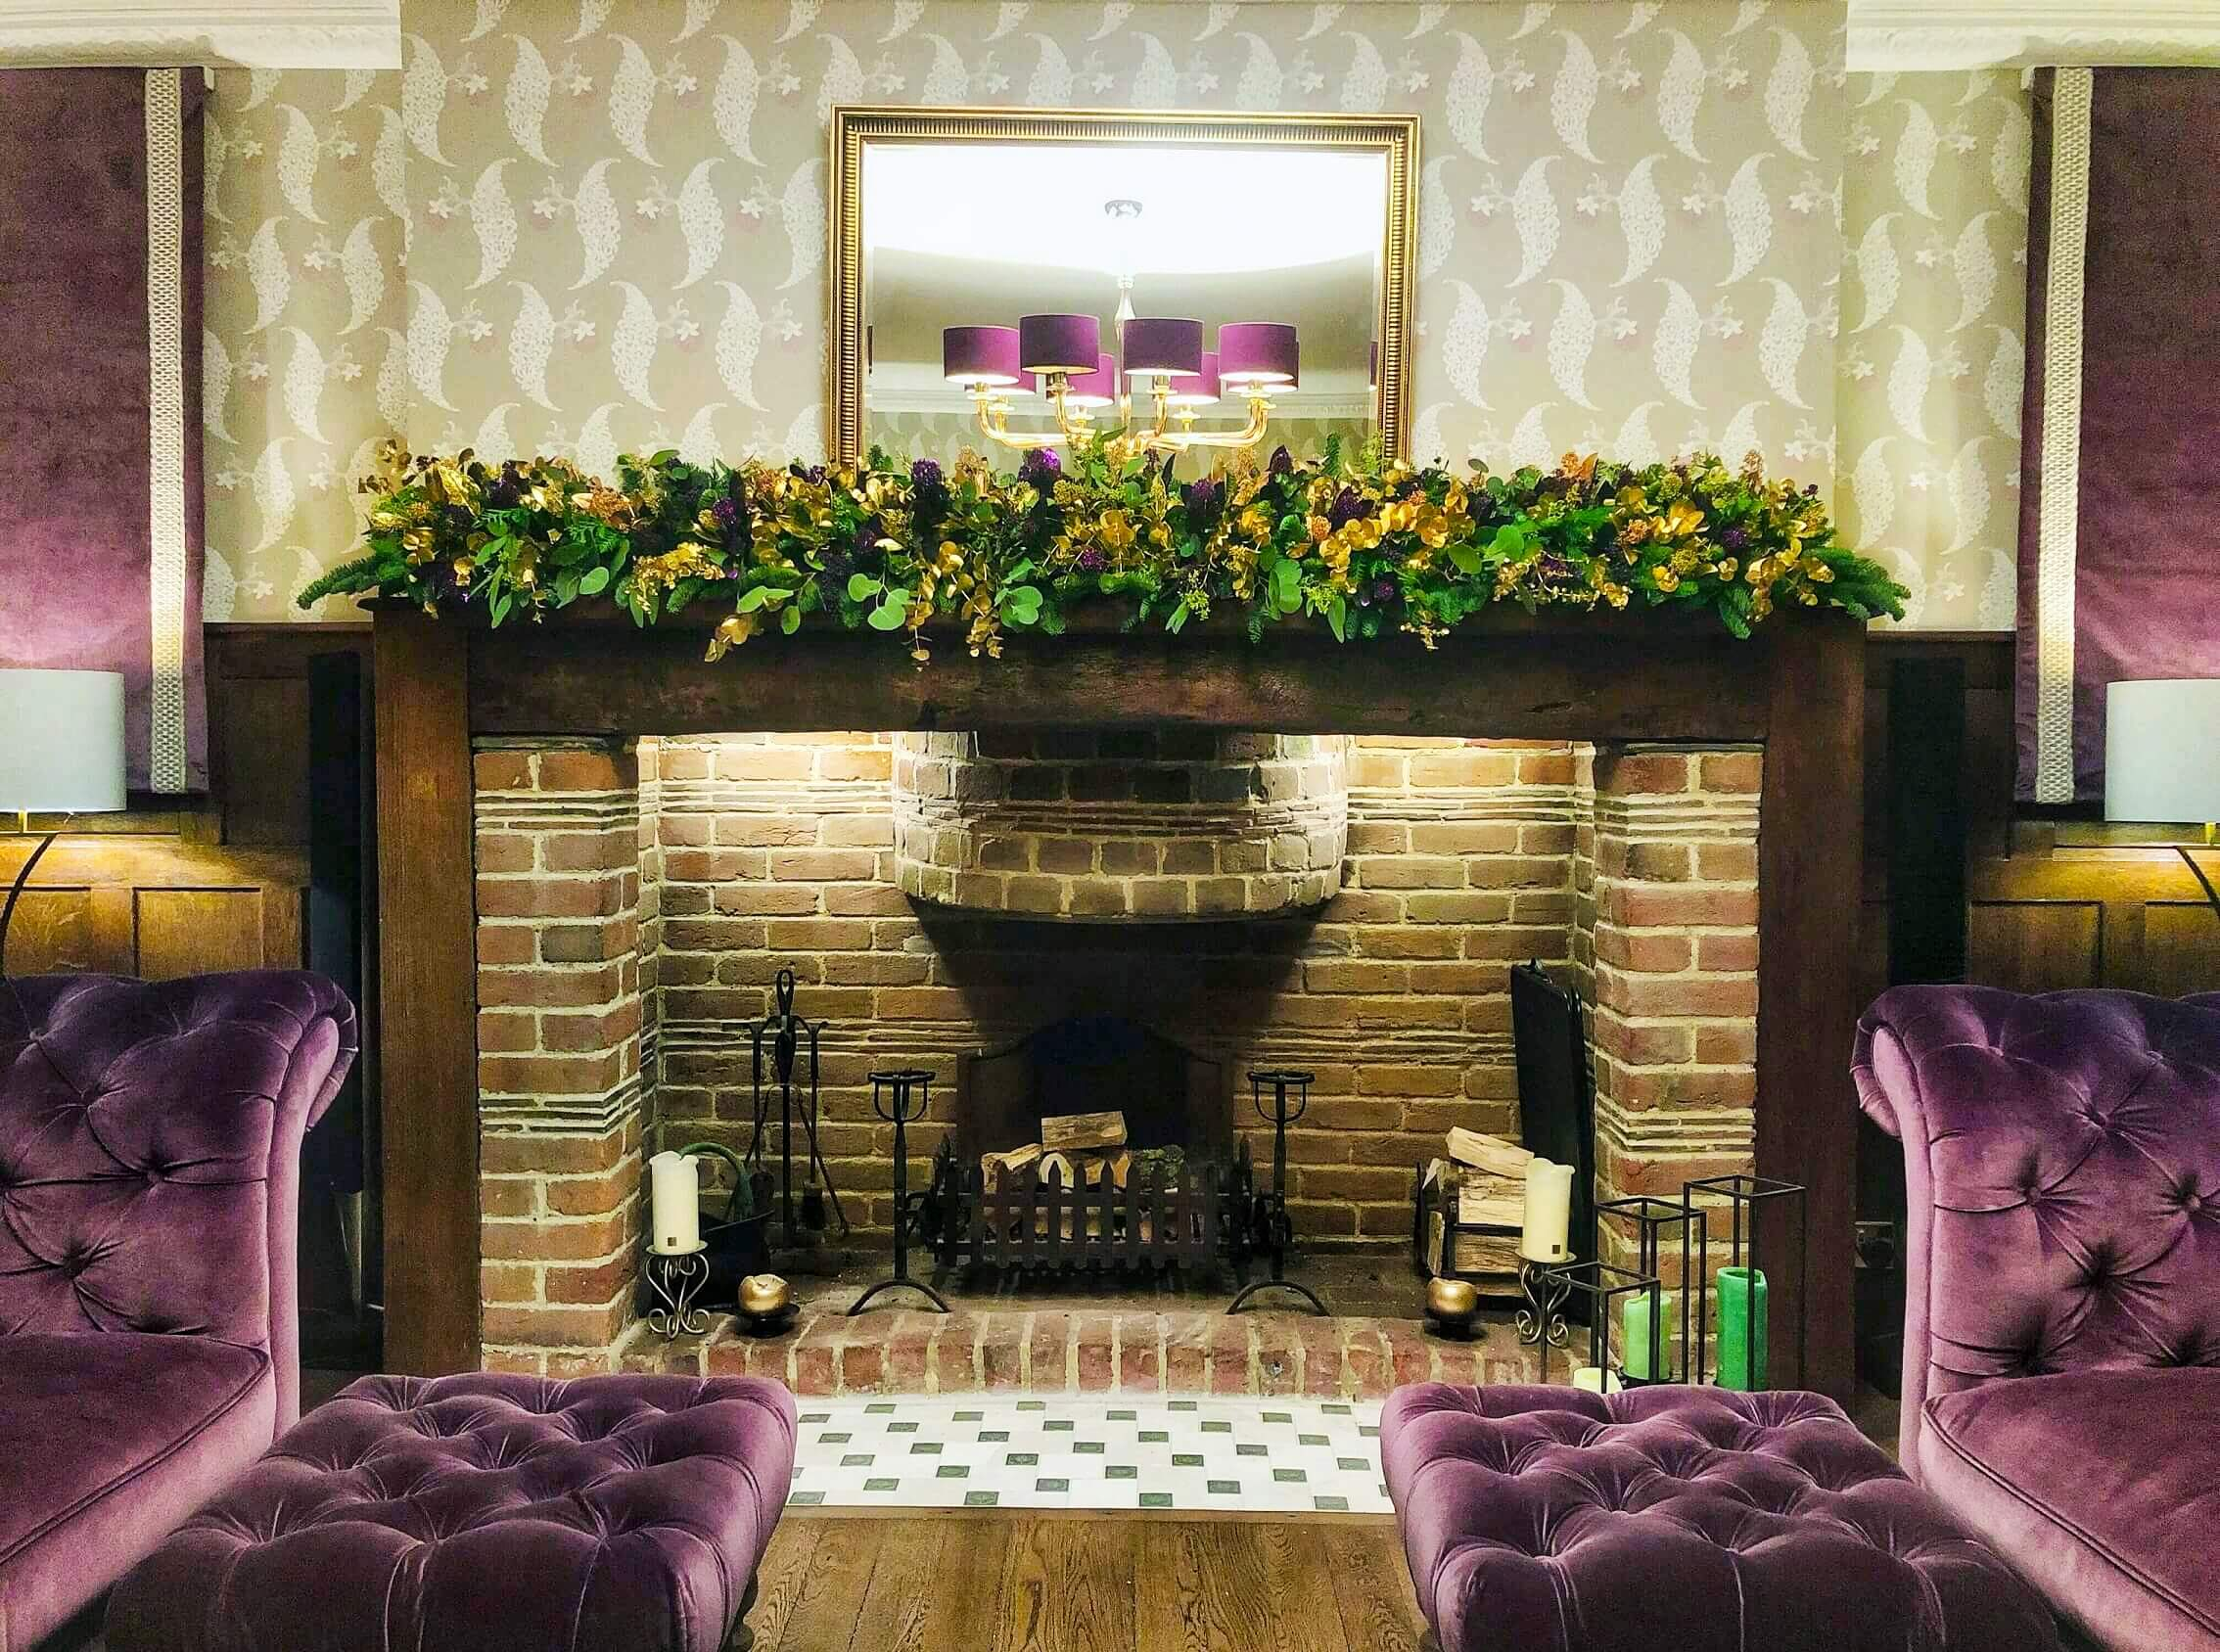 Blooming Boutique Fireplace Christmas Garland - green, gold and purple above brick fireplace